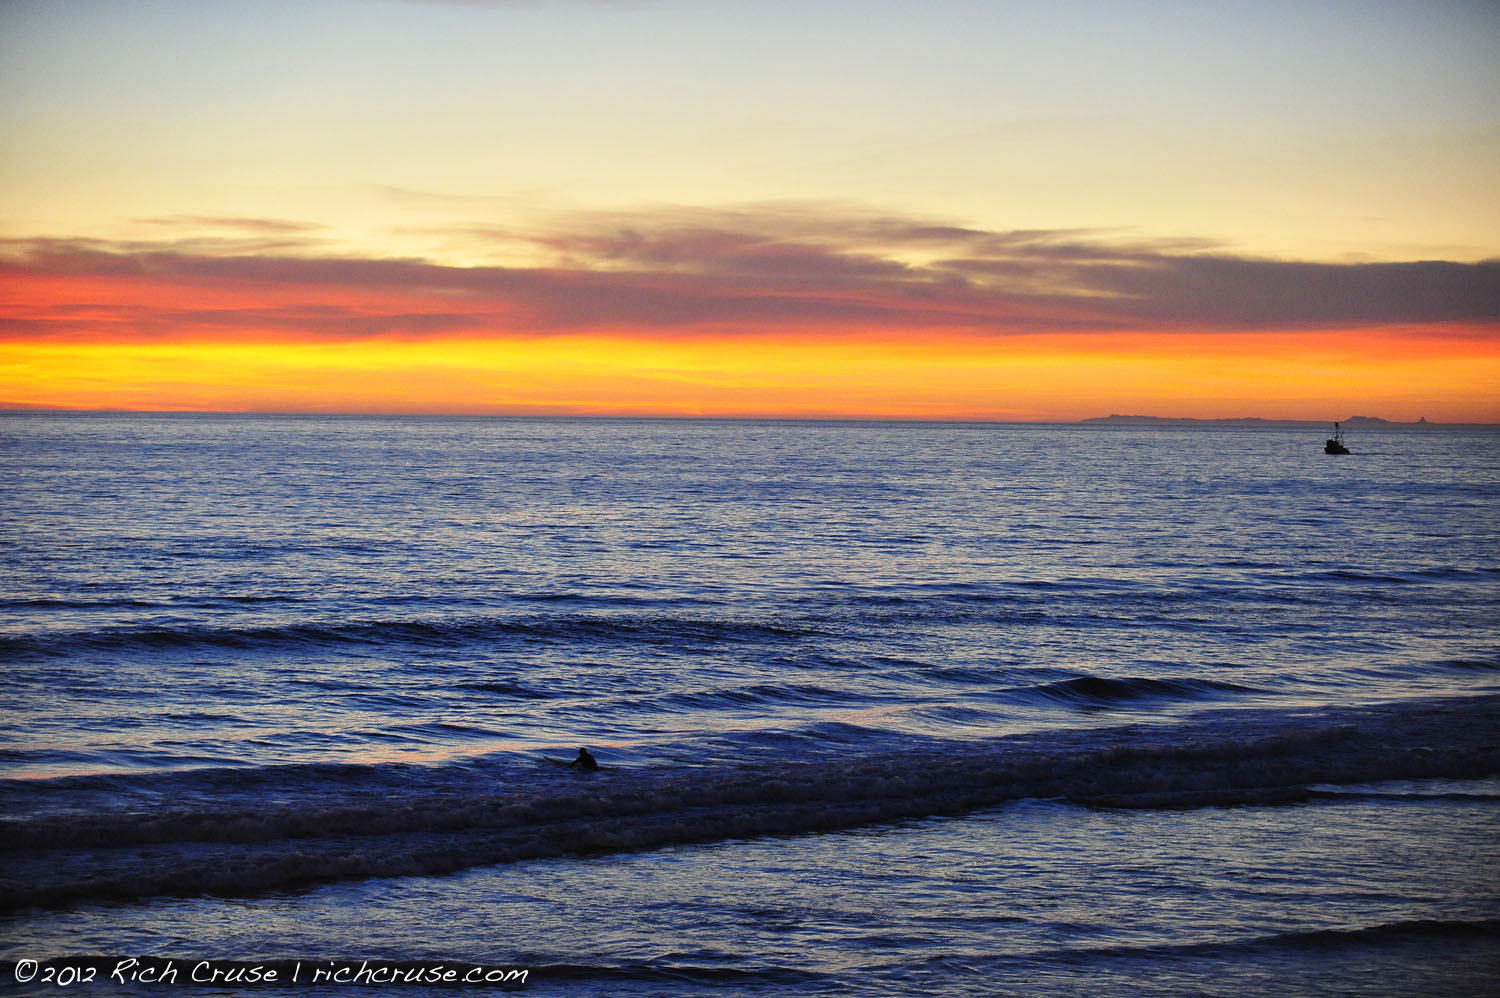 Photograph Oceanside February 22, 2012  by Rich Cruse on 500px